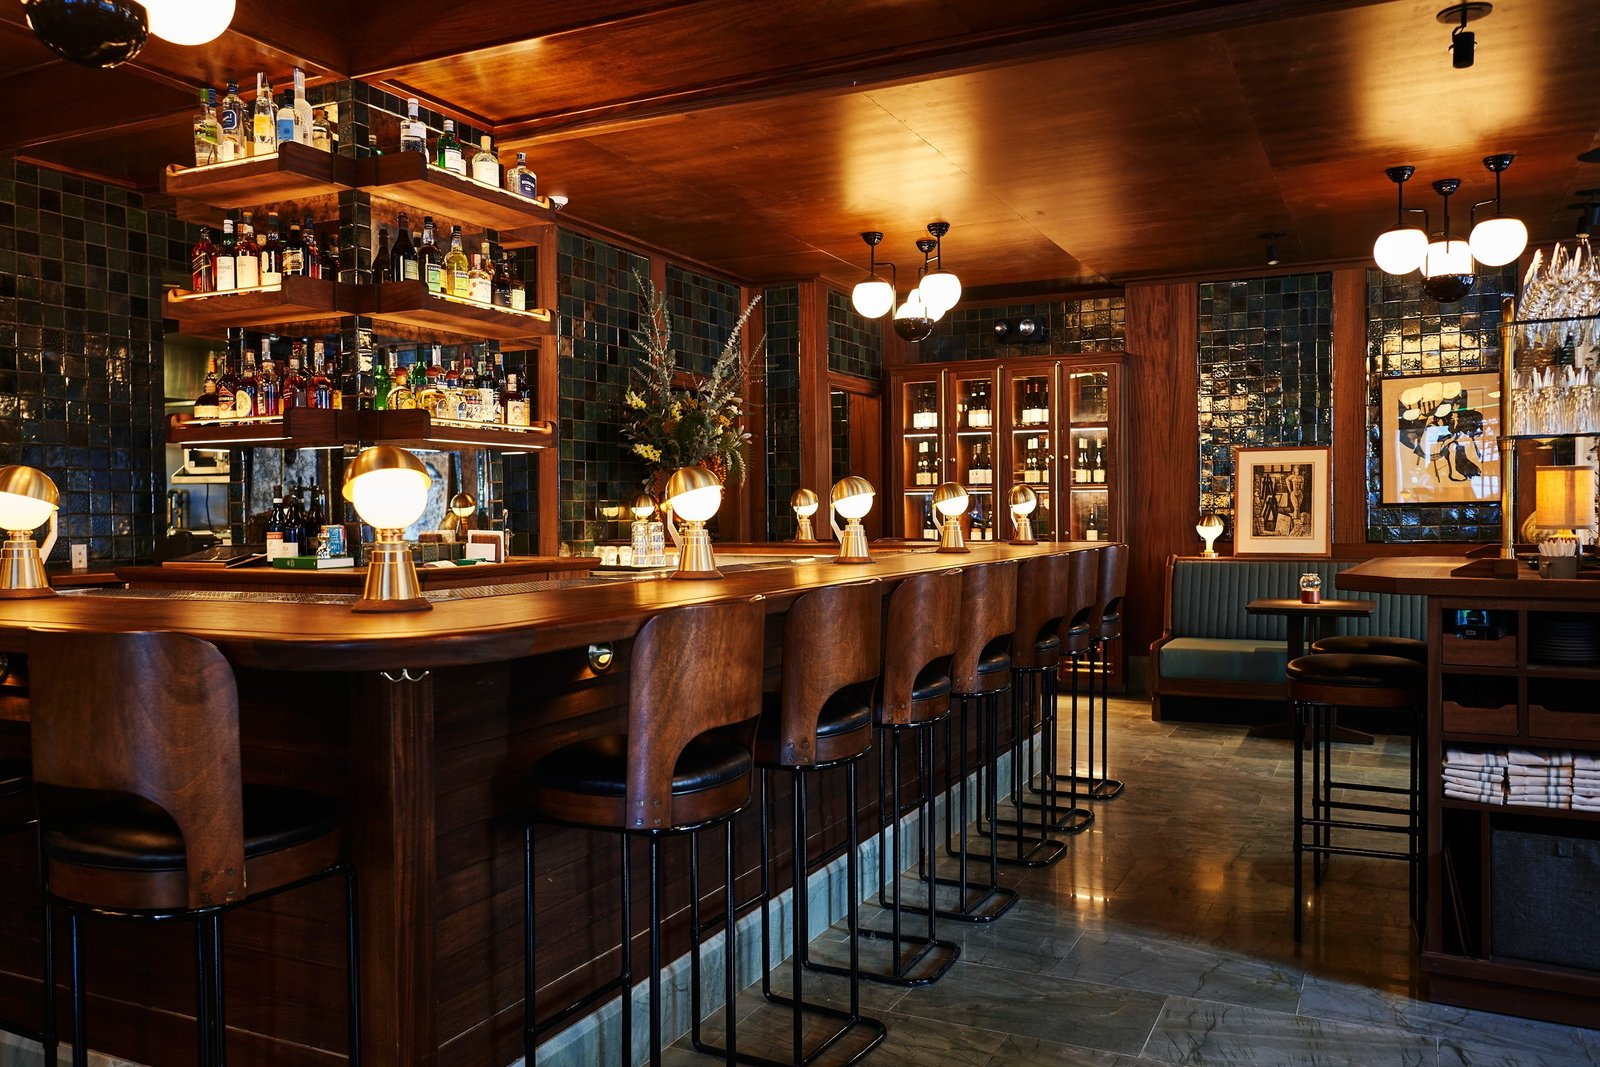 Dining Room, Table Lighting, Bar, Ceiling Lighting, and Stools  Freehand New York